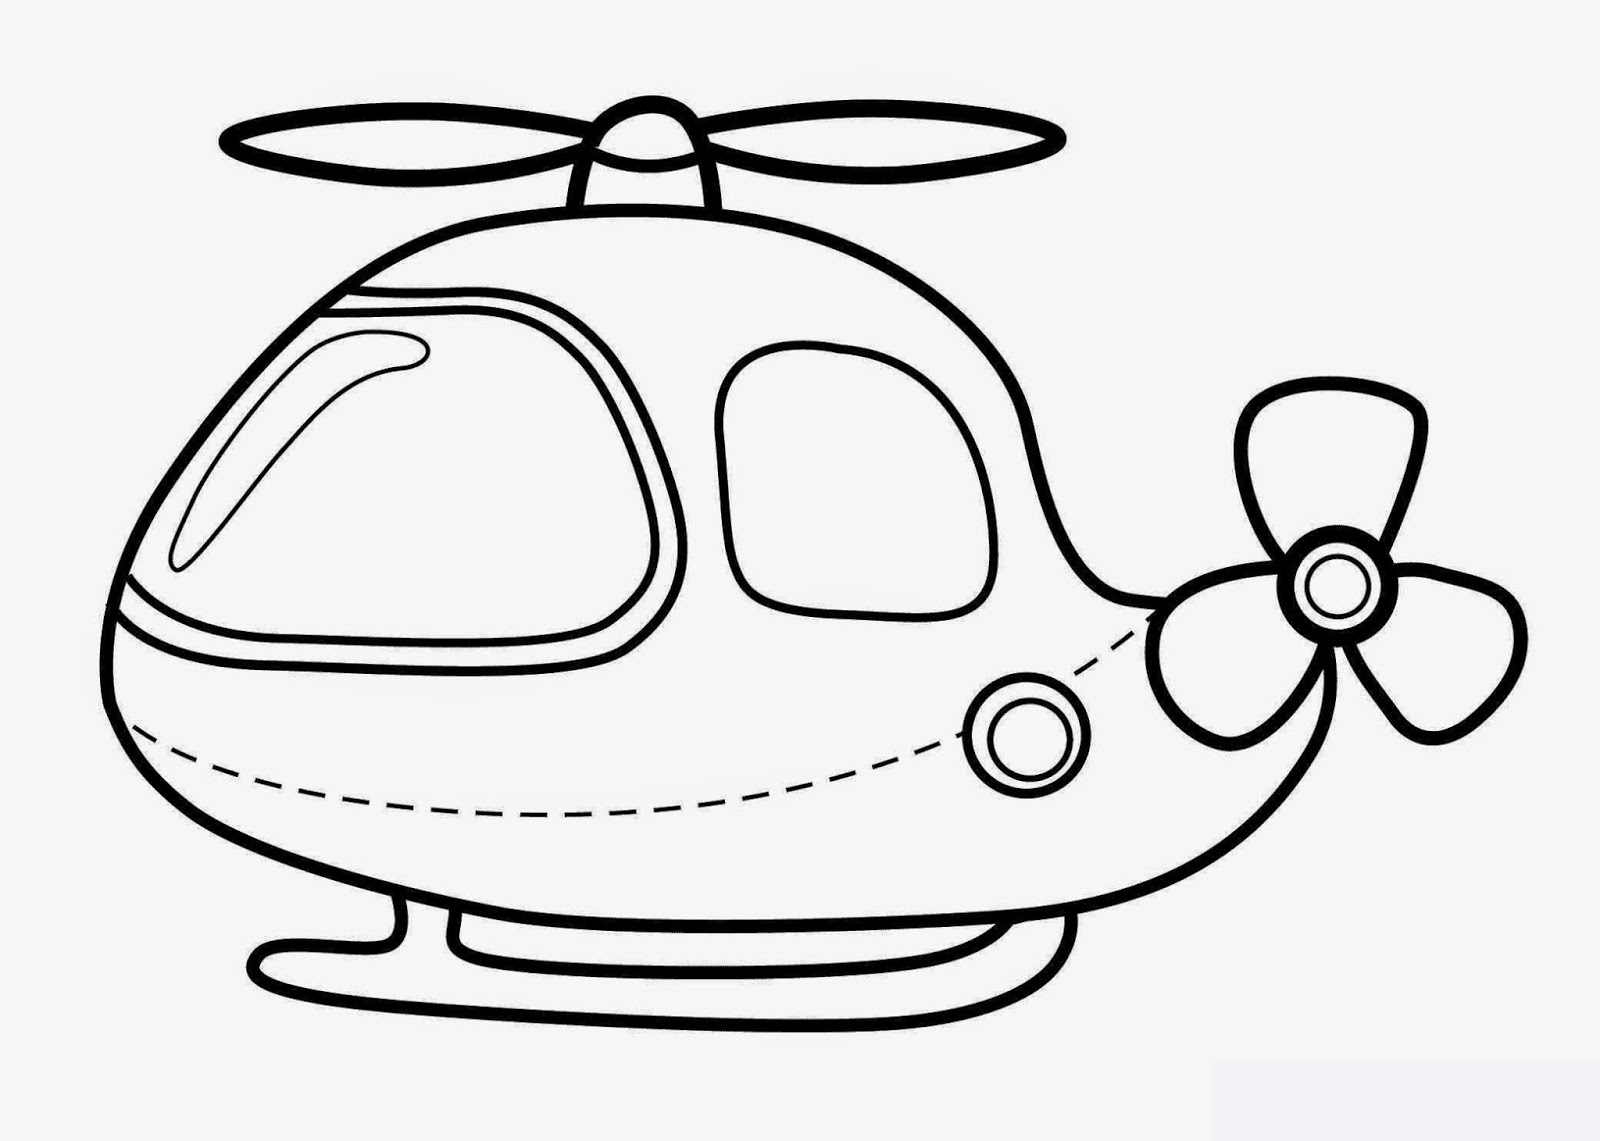 Kids Under 7: Vehicles Coloring Pages